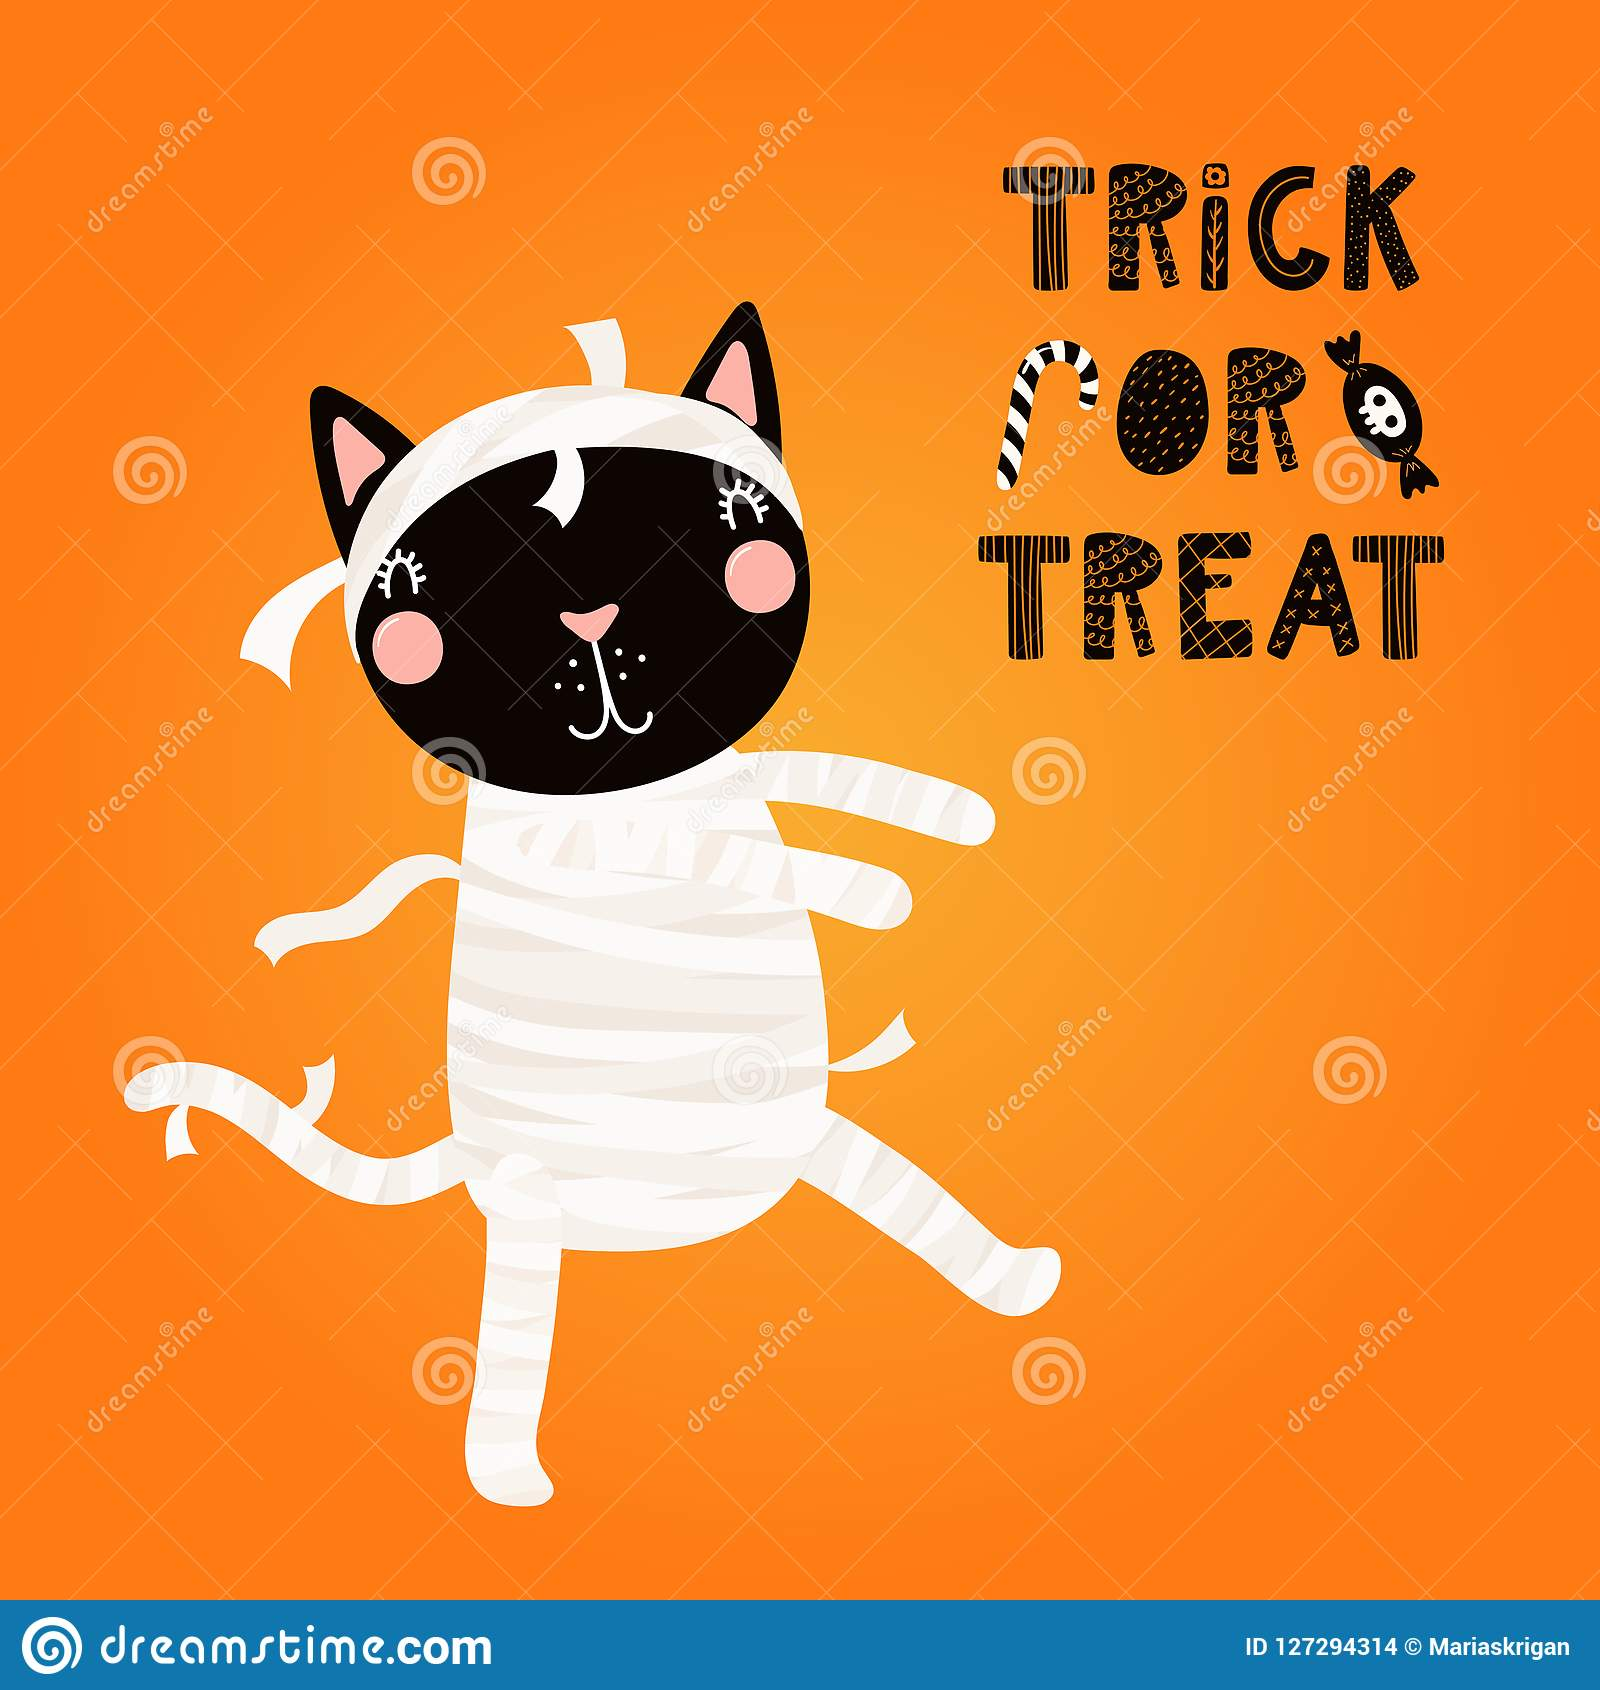 cute black cat in halloween costume stock vector - illustration of